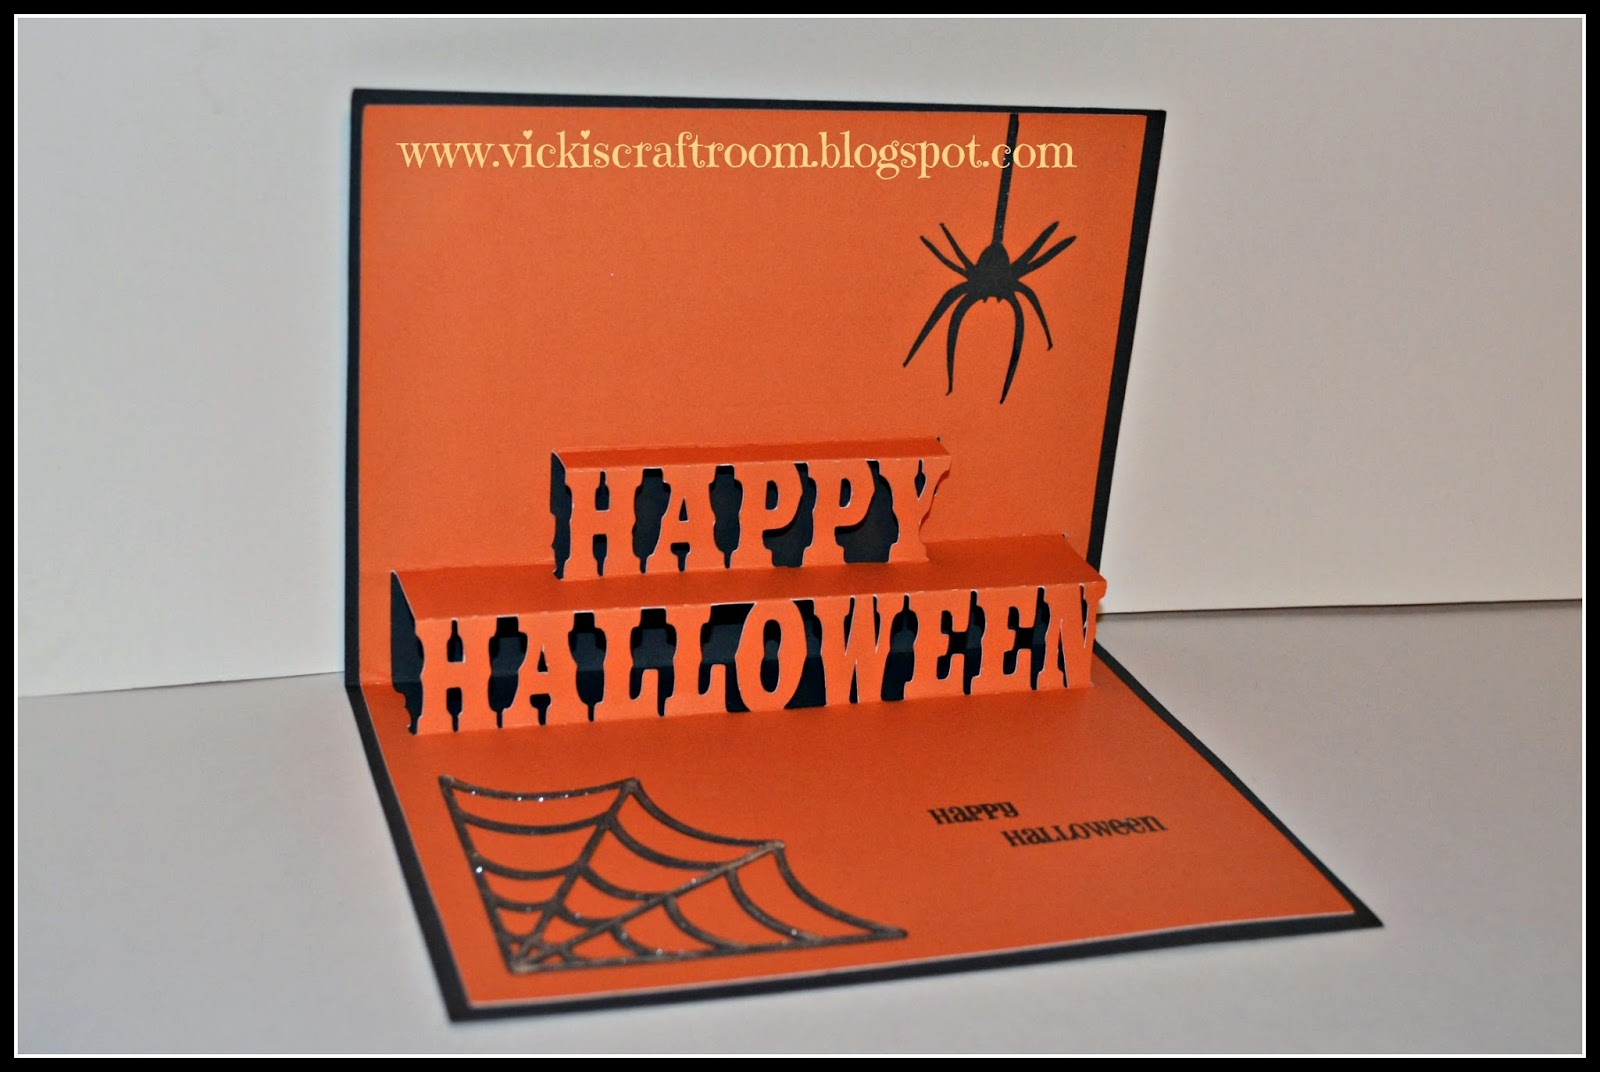 vicki's craft room: happy halloween